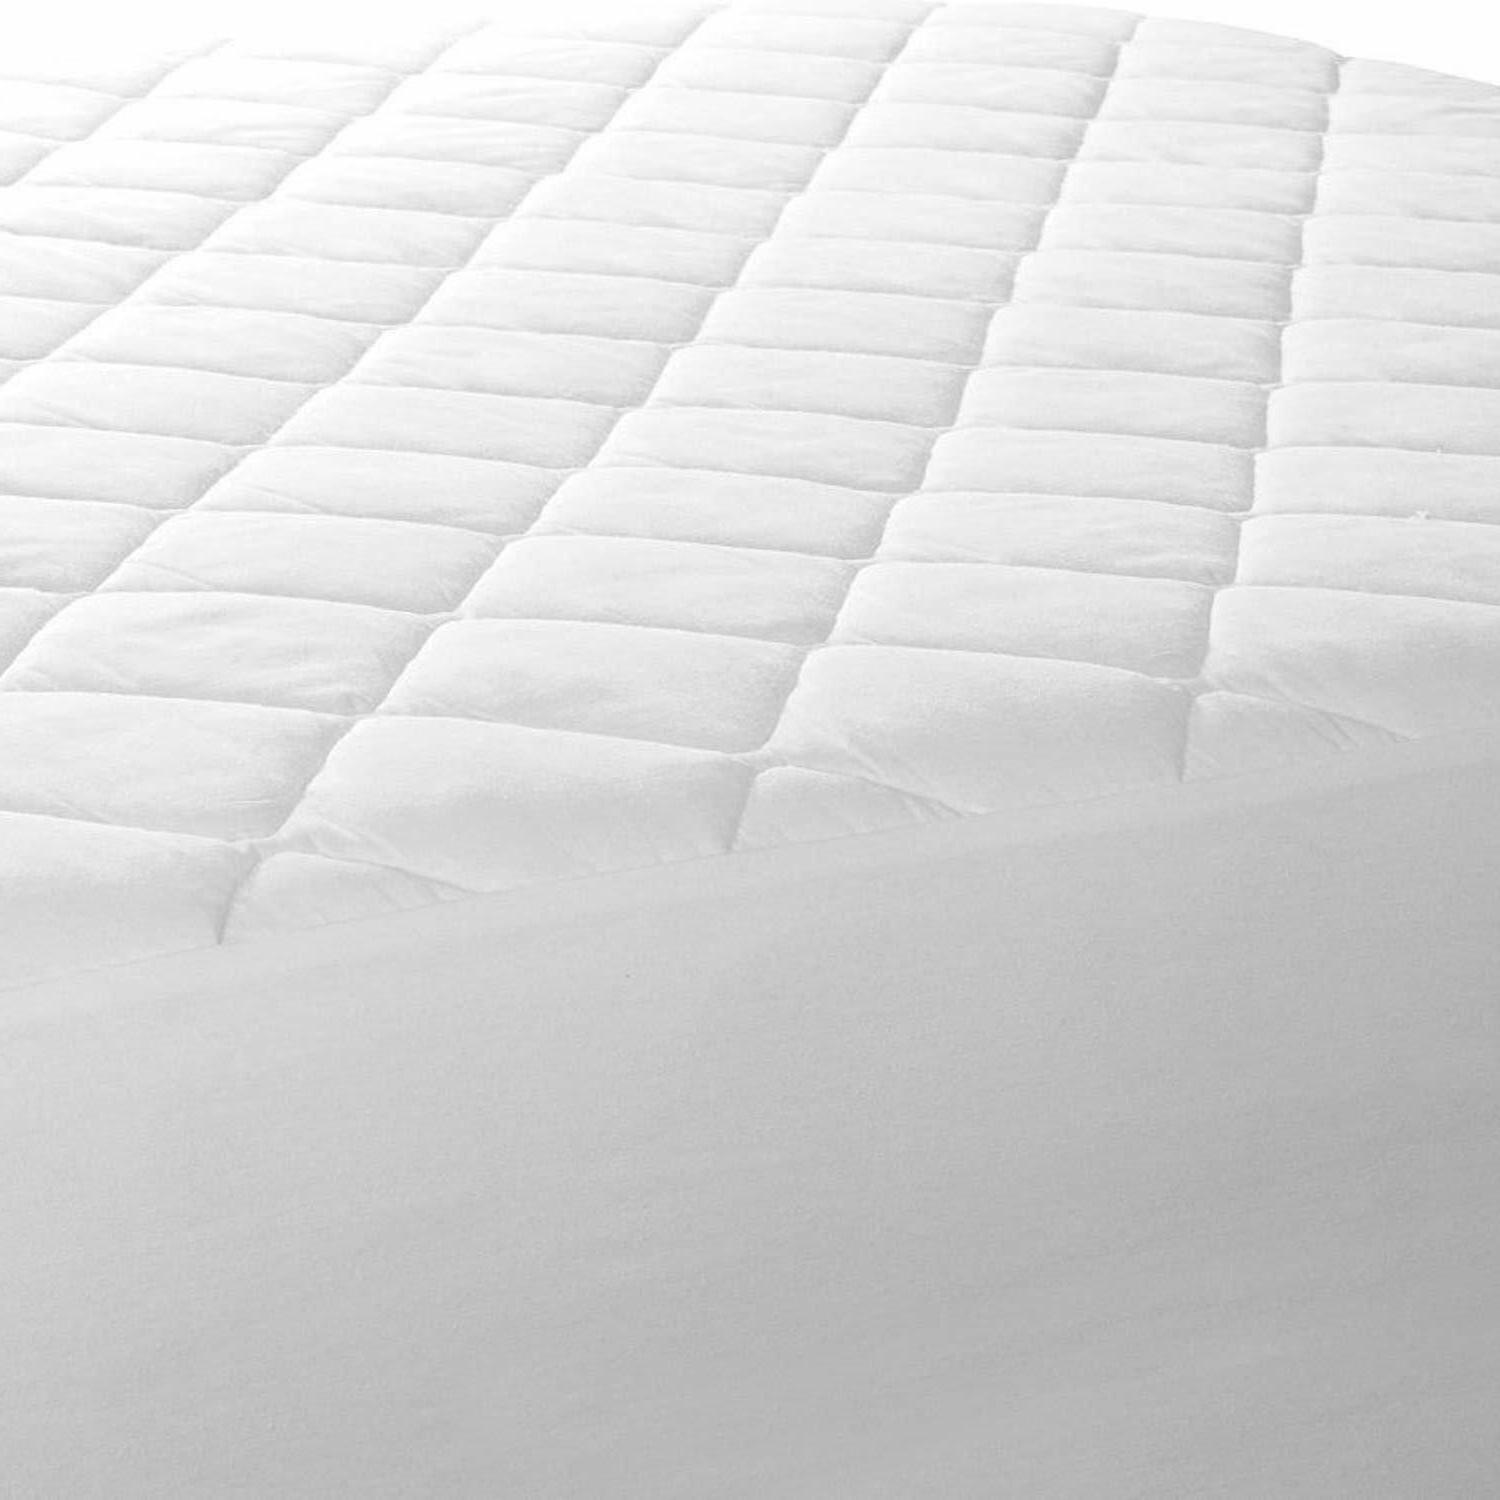 QUEEN SIZE MATTRESS Luxury Bed Pad